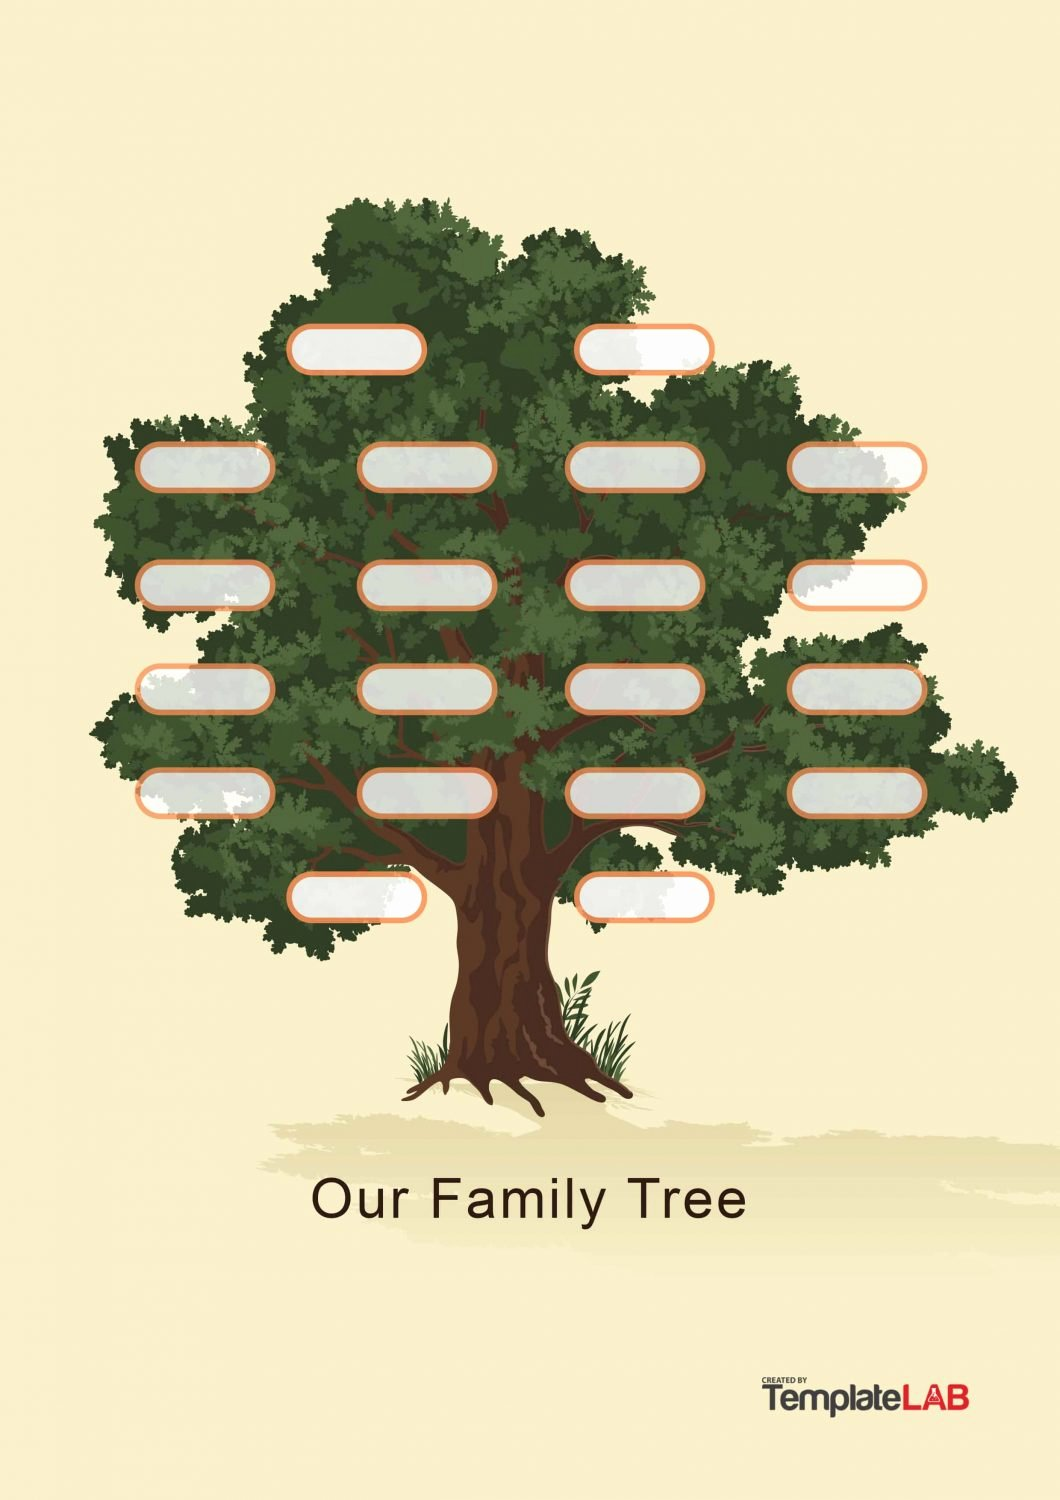 Tree Template for Family Tree Awesome 50 Free Family Tree Templates Word Excel Pdf